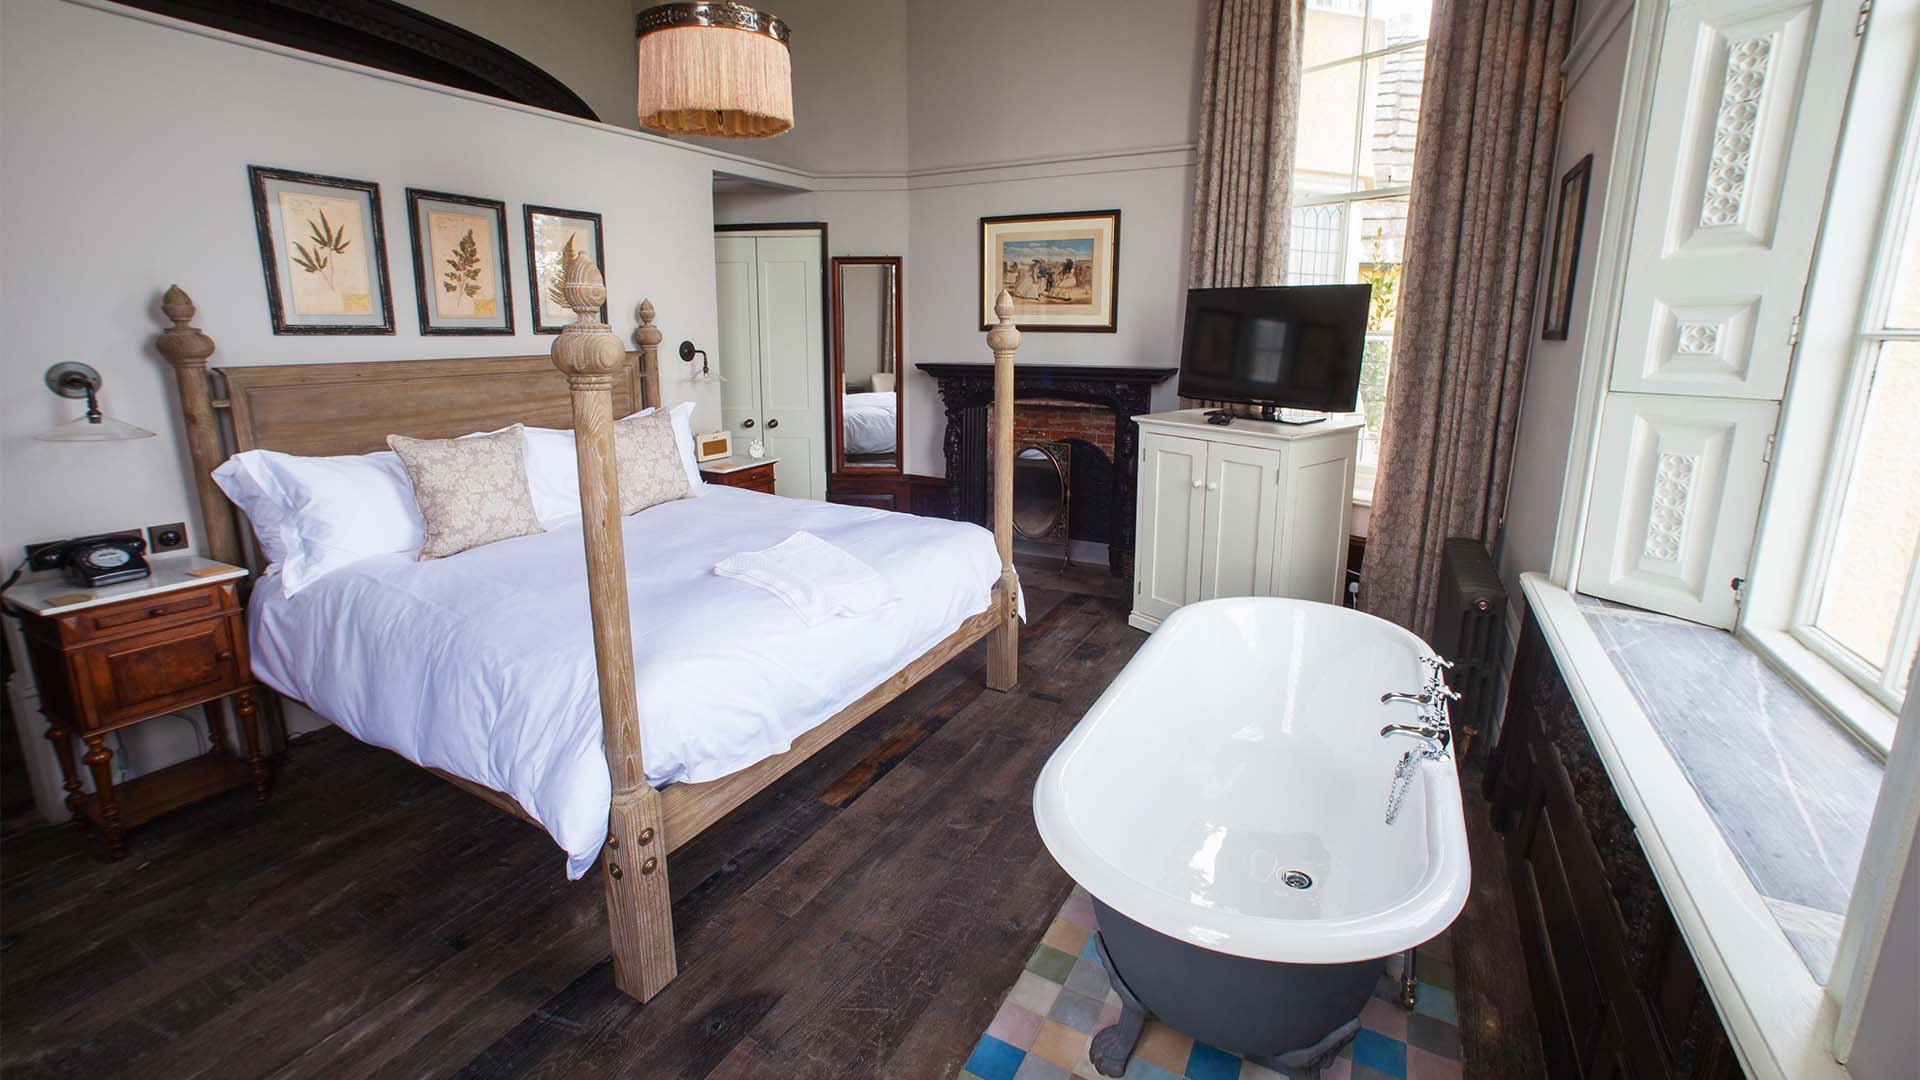 Room at The Pig on the Beach, Dorset